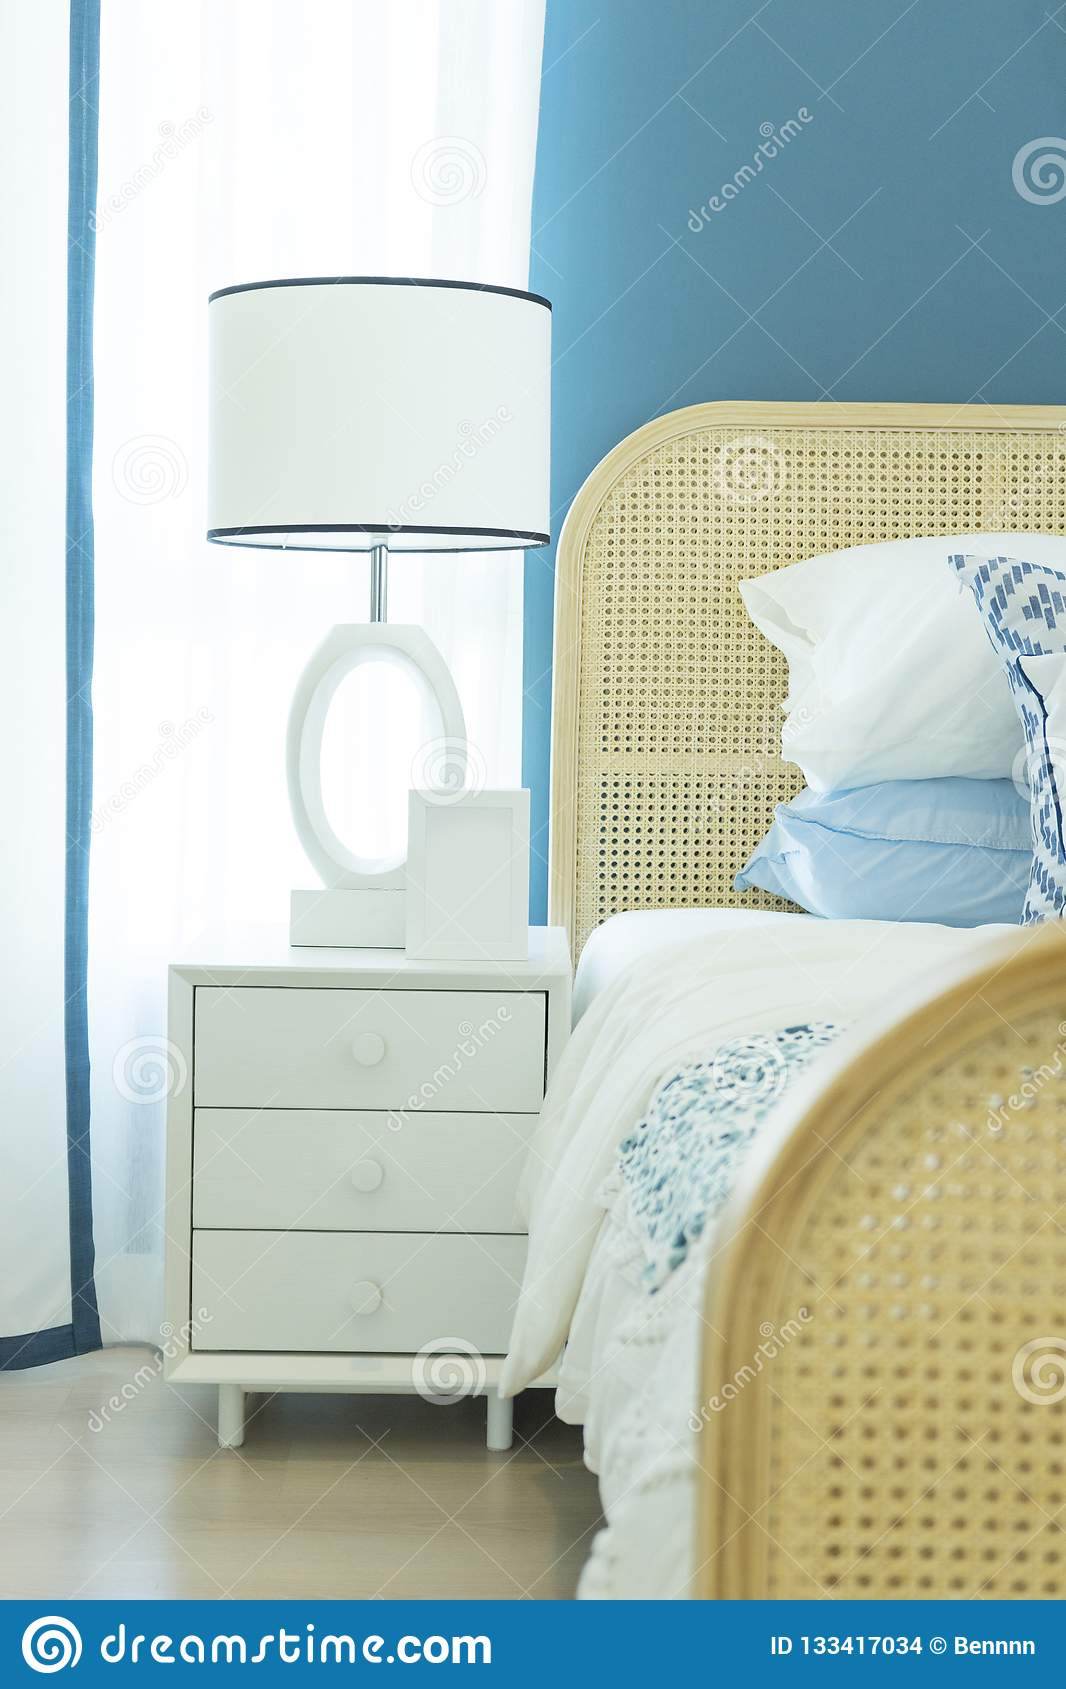 Master Bedroom With Blue Wall And White Table Lamp Stock Photo Image Of Pillow Bedroom 133417034